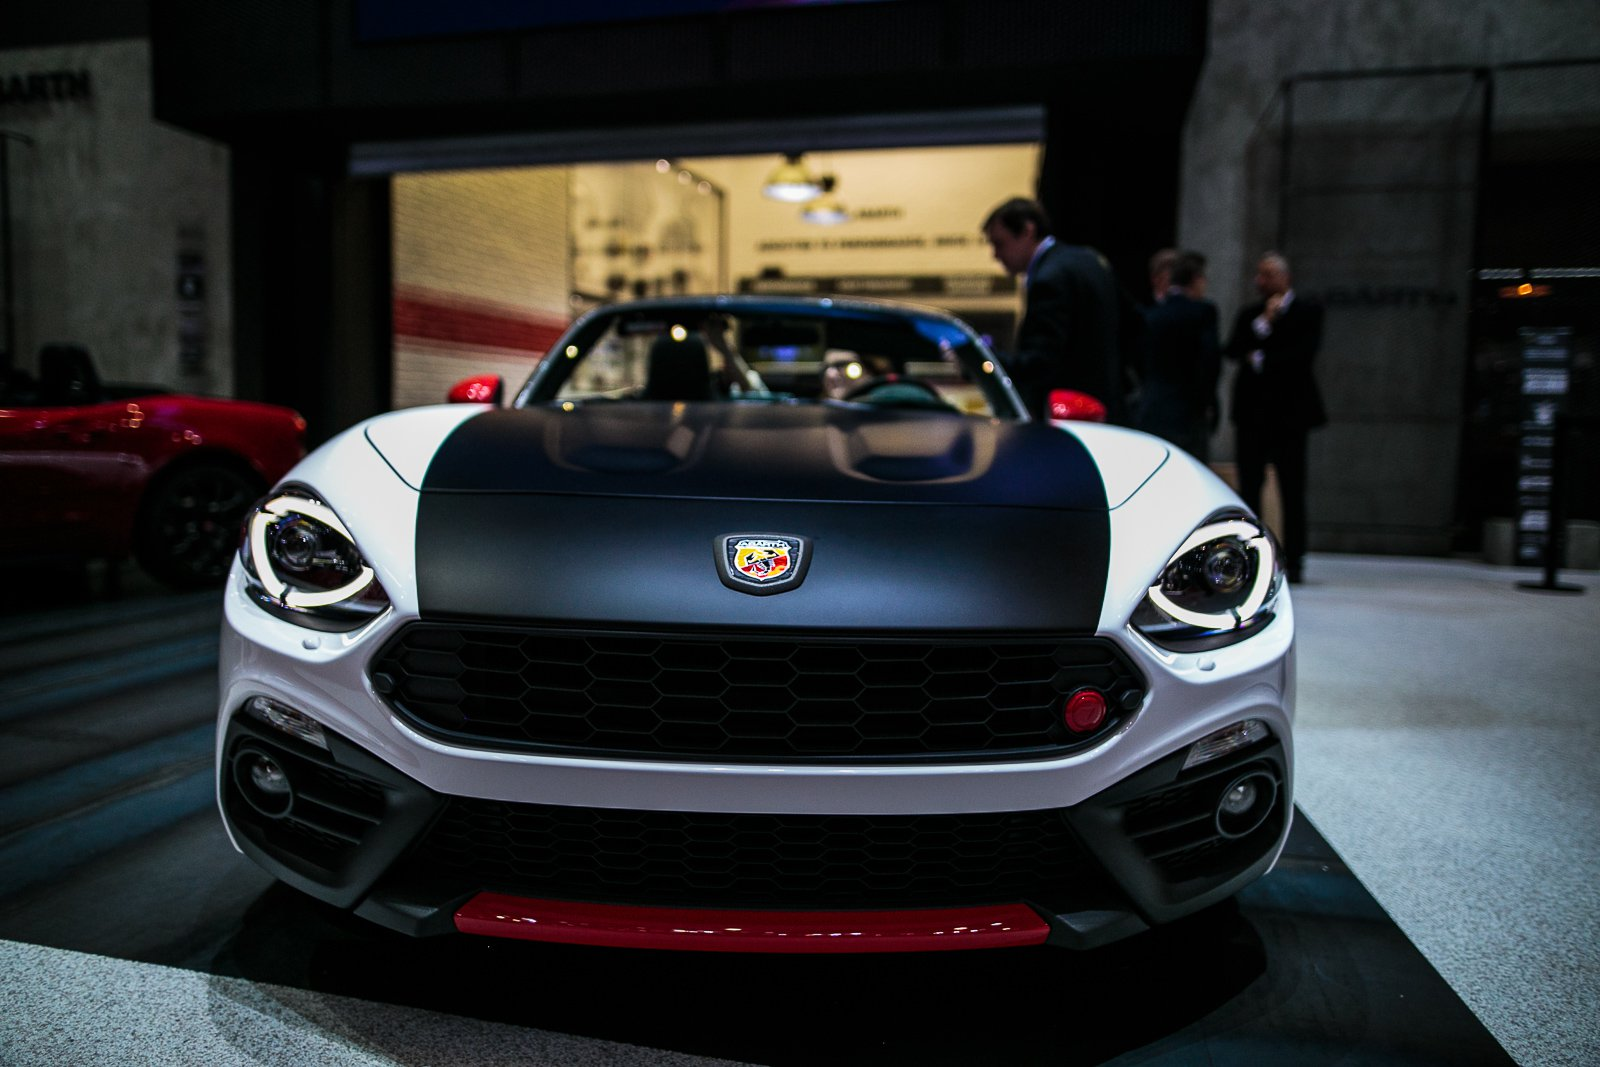 fiat abarth 124 spider wallpapers hd full hd pictures. Black Bedroom Furniture Sets. Home Design Ideas